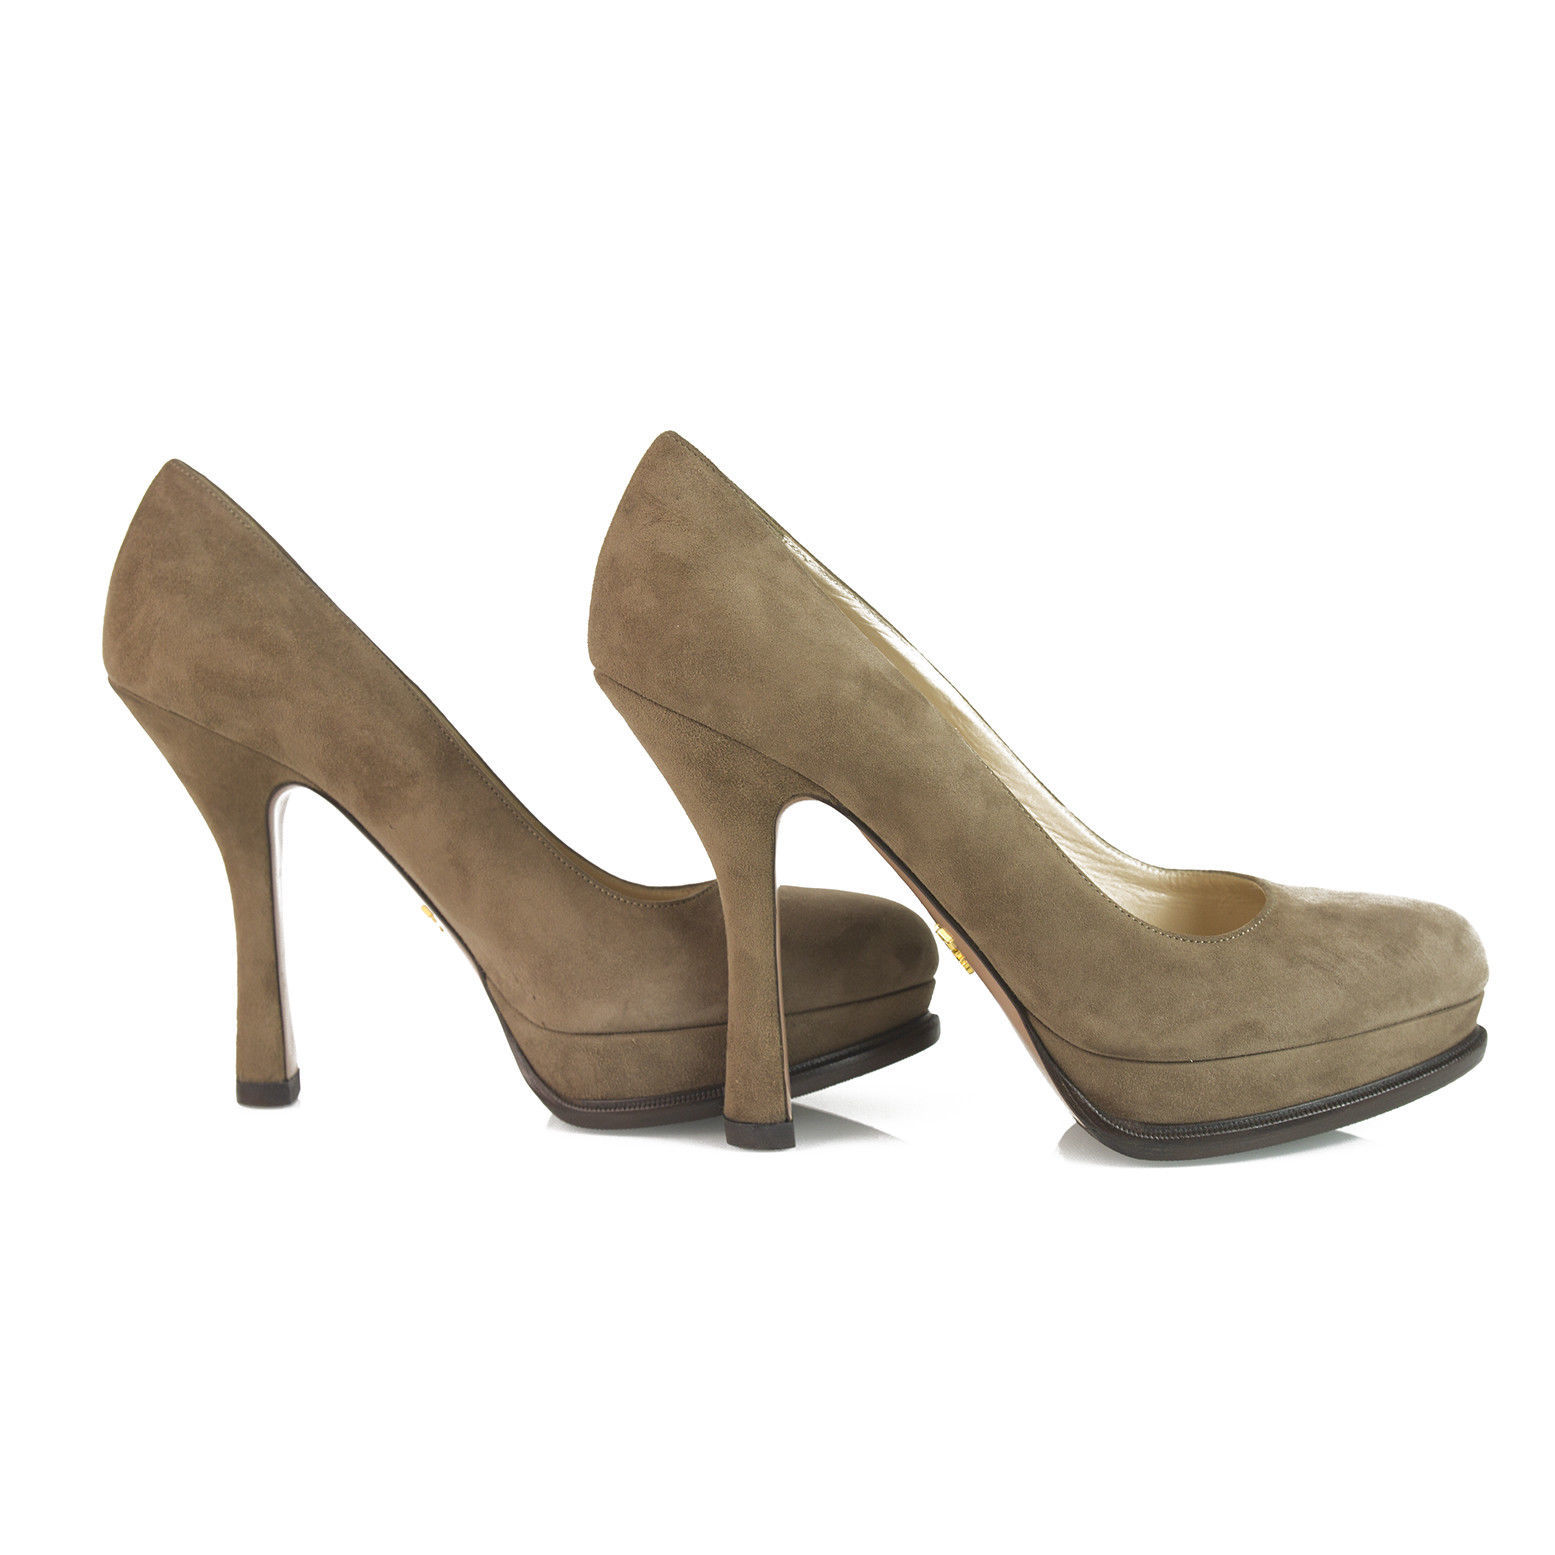 Prada Taupe Brown Suede Leather Classic Pumps Round Toe Slim Heel Platform sz 40 image 5